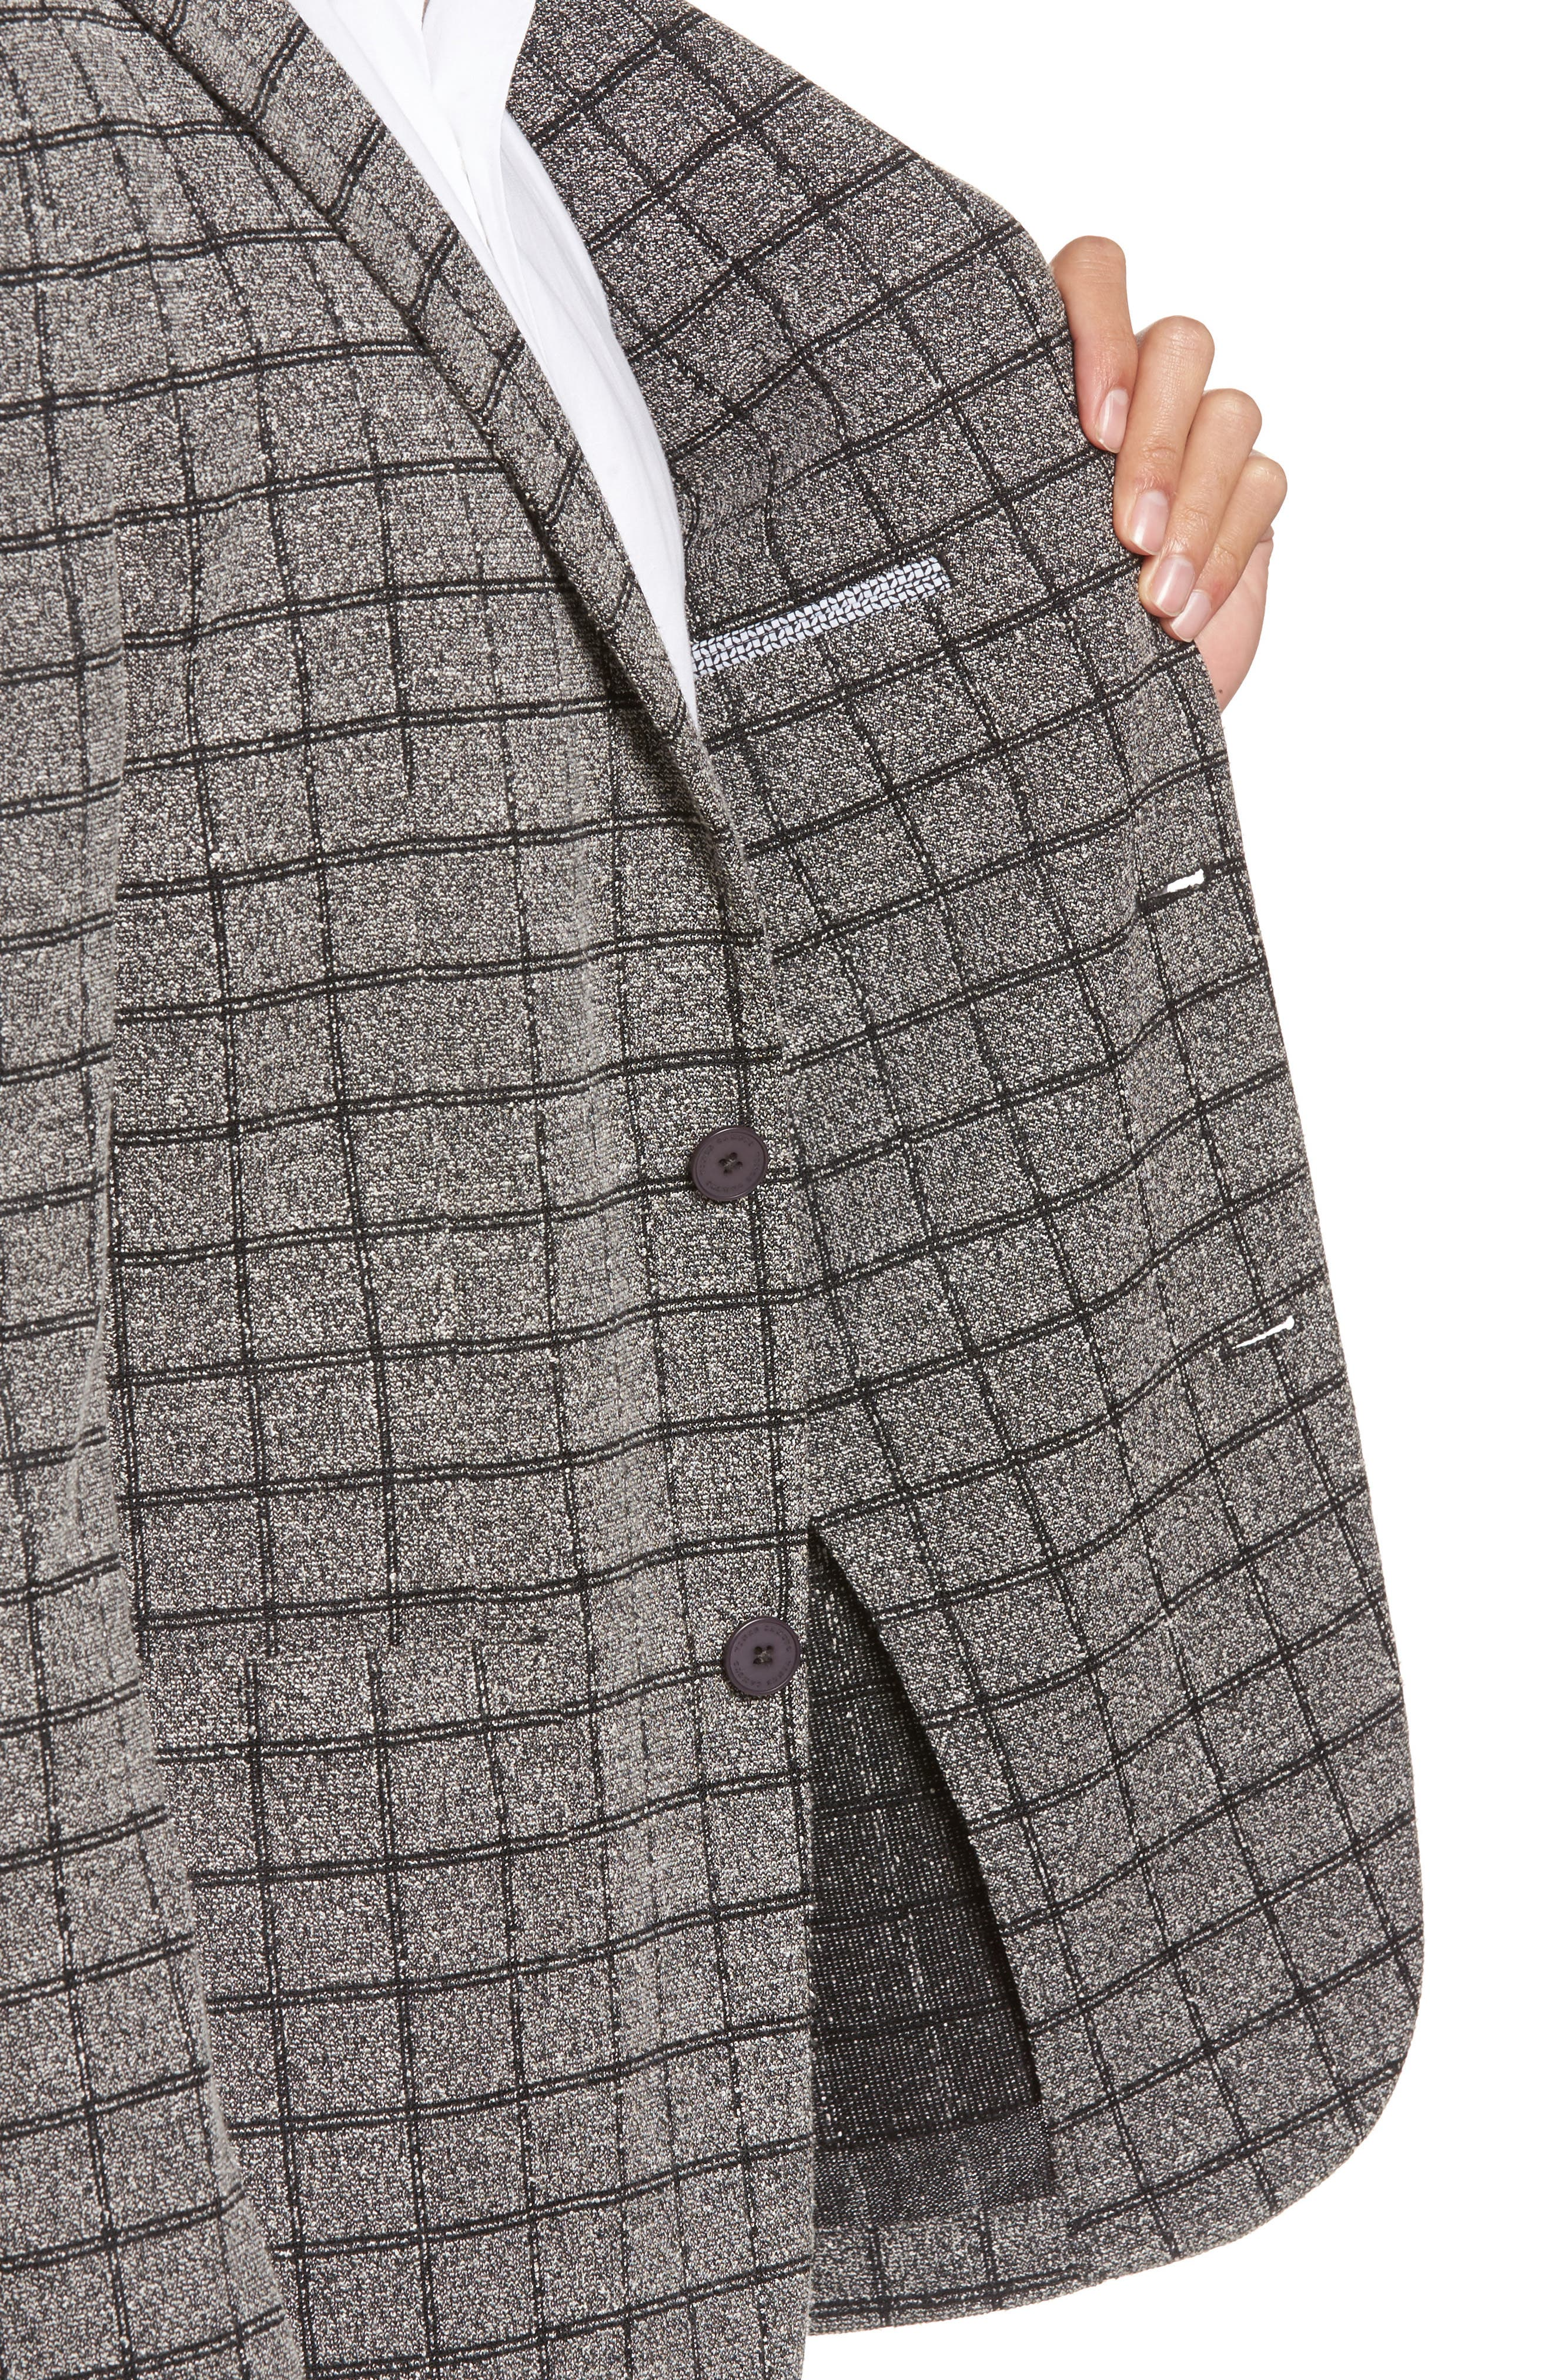 Del Aria Slim Fit Check Knit Jacket,                             Alternate thumbnail 4, color,                             Charcoal Windowpane Boucle